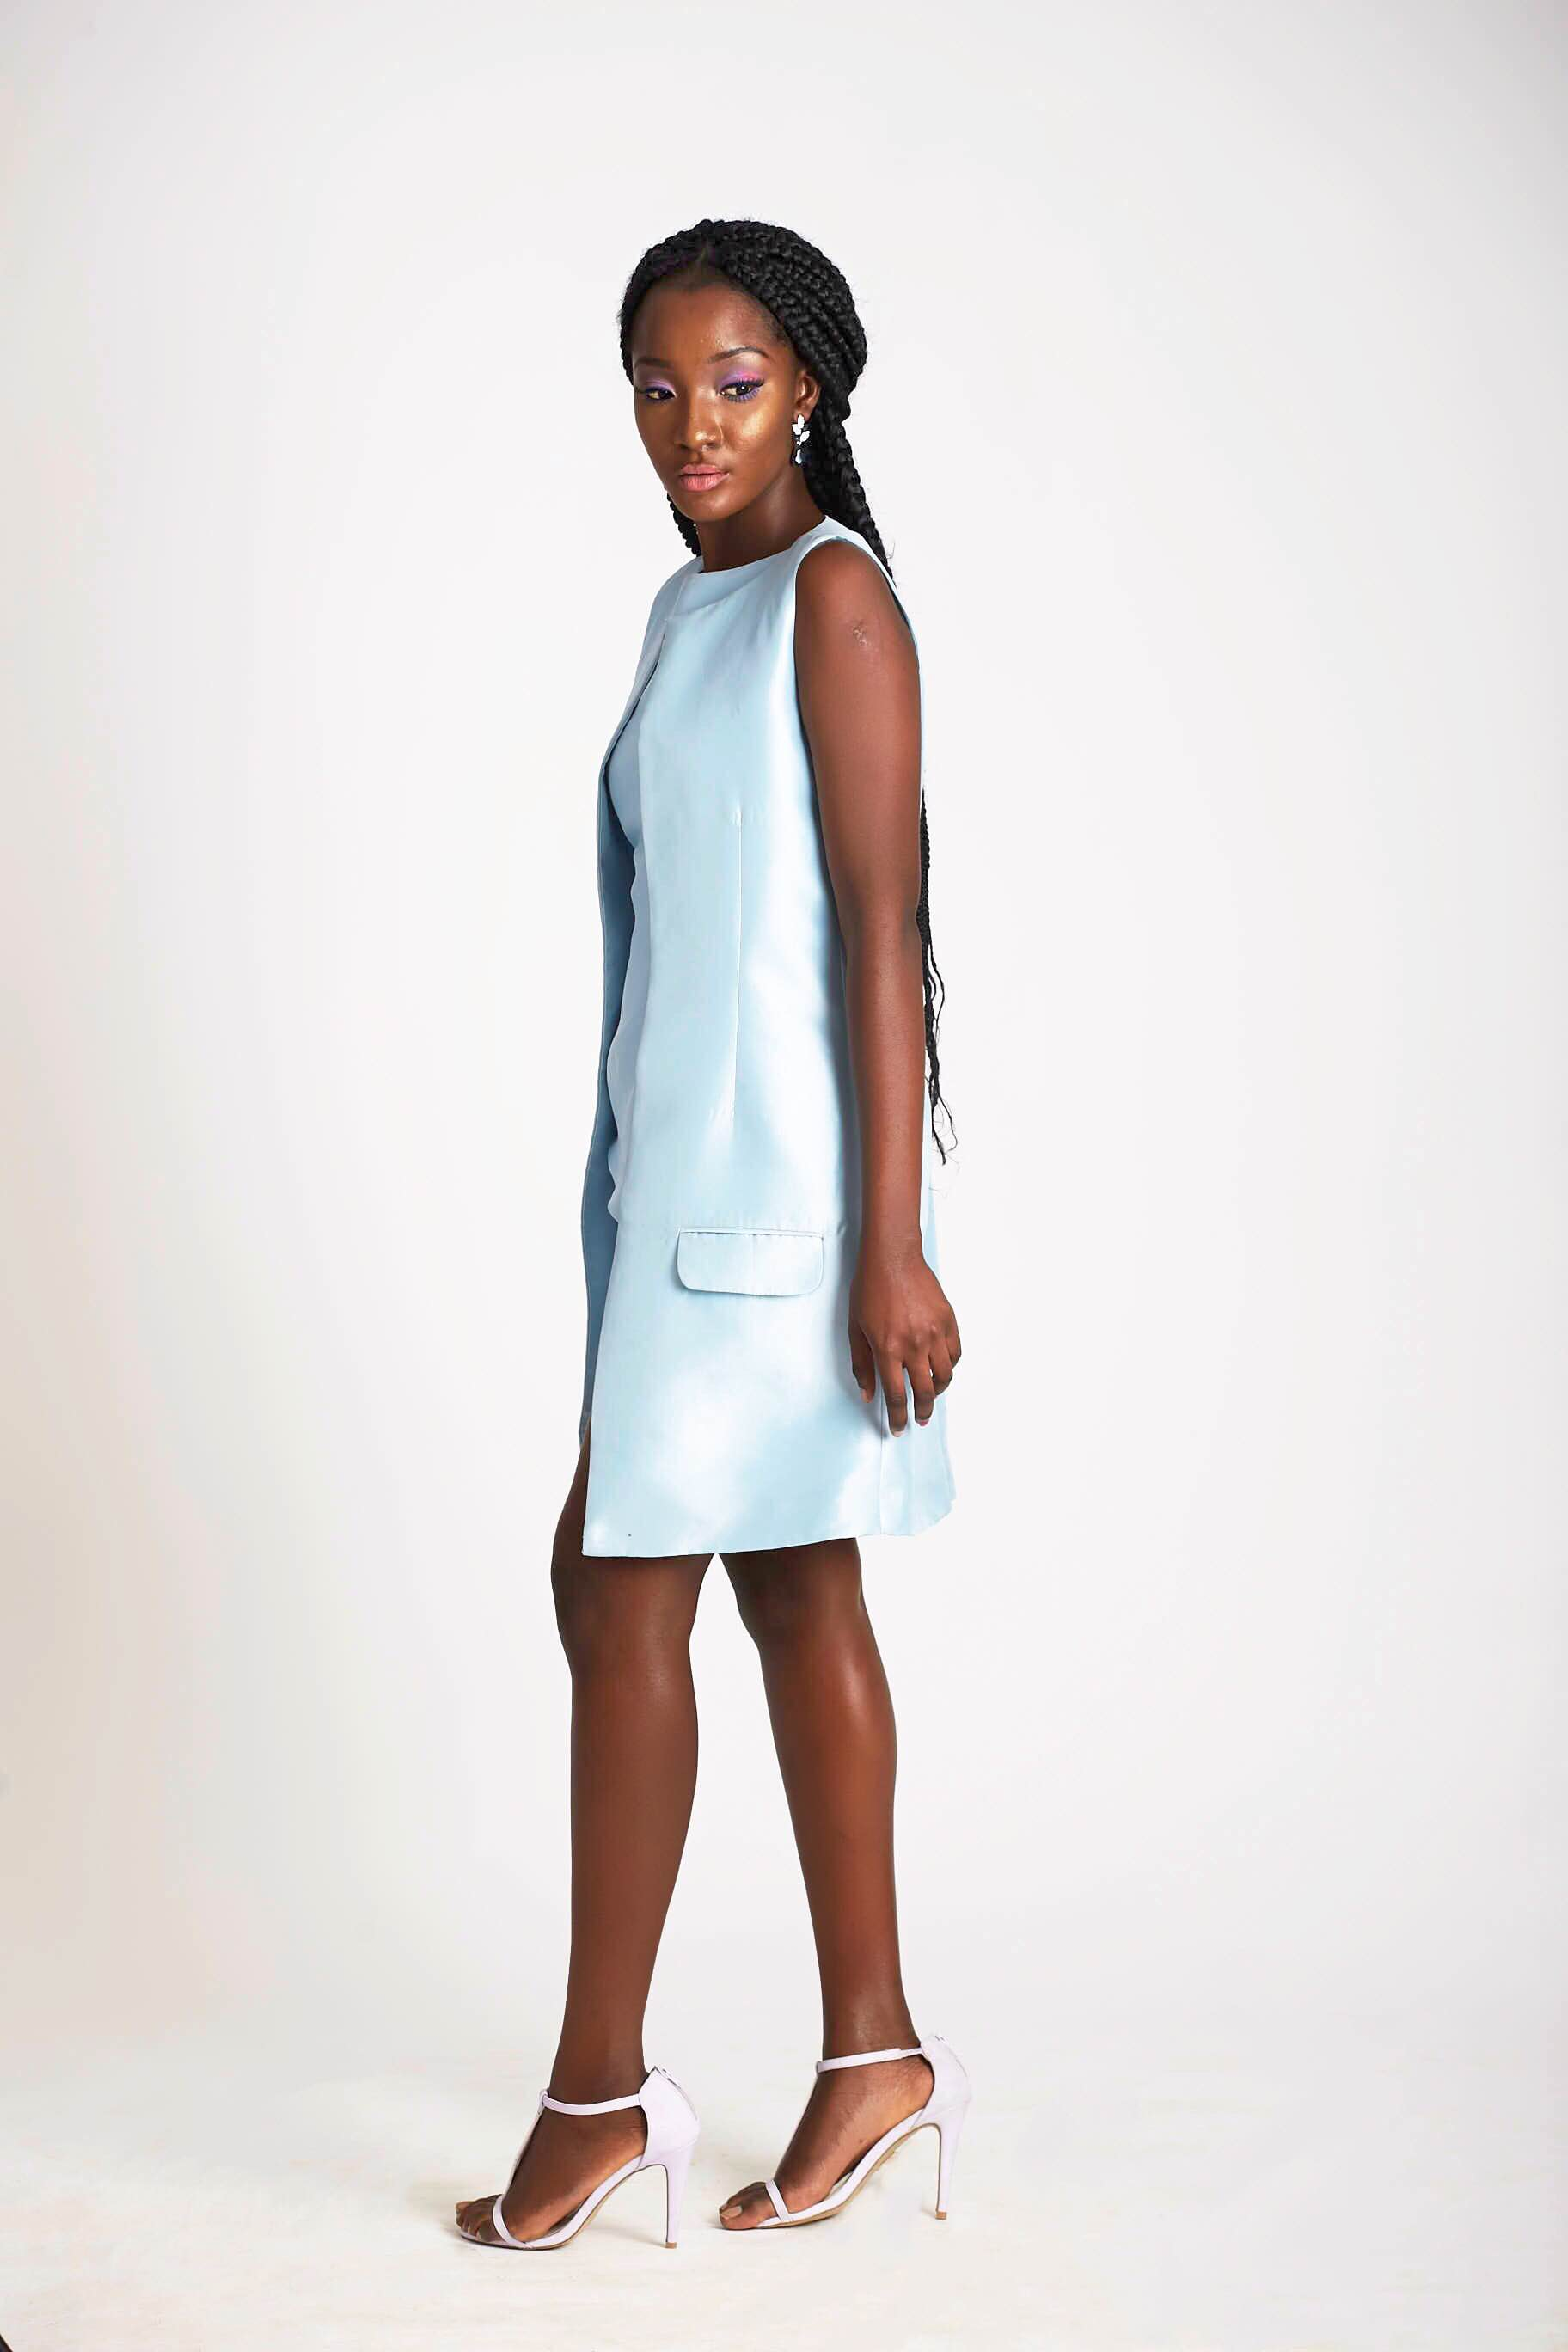 Imad Eduso - BN Style - Collection Lookbook - BellaNaija.com 03